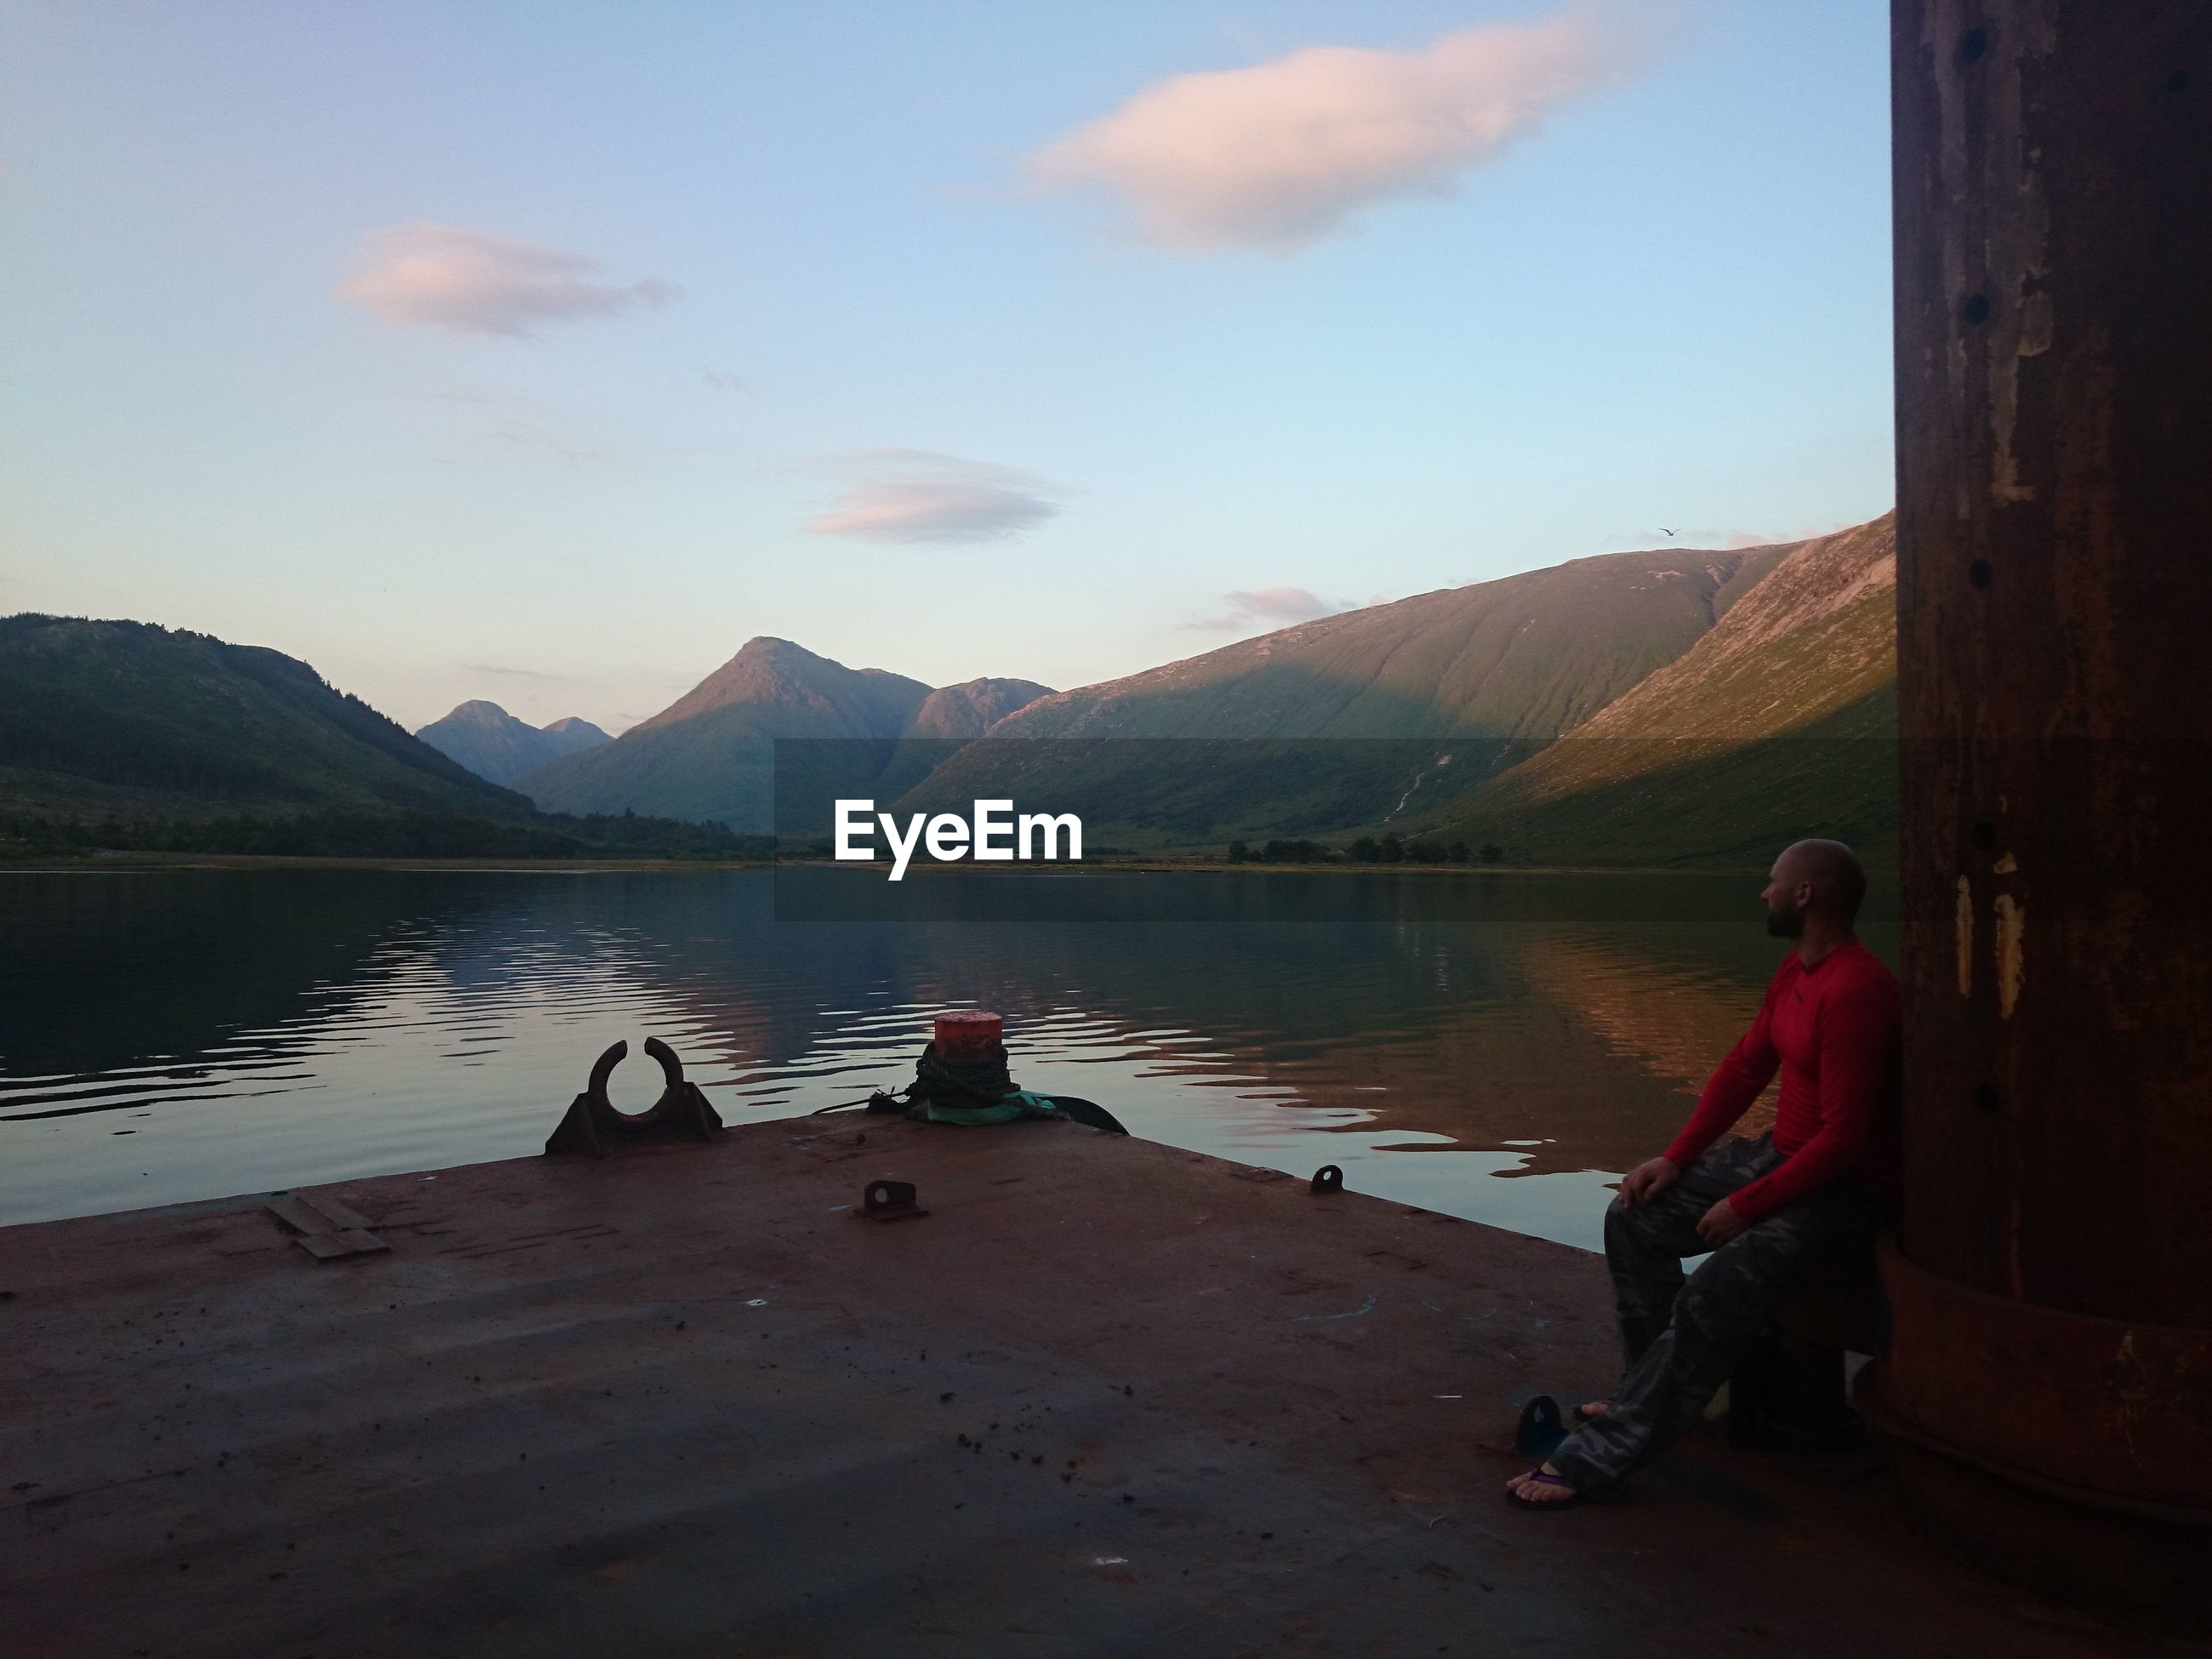 mountain, water, leisure activity, lake, lifestyles, rear view, full length, mountain range, casual clothing, sitting, sky, men, standing, nautical vessel, nature, tranquility, beauty in nature, scenics